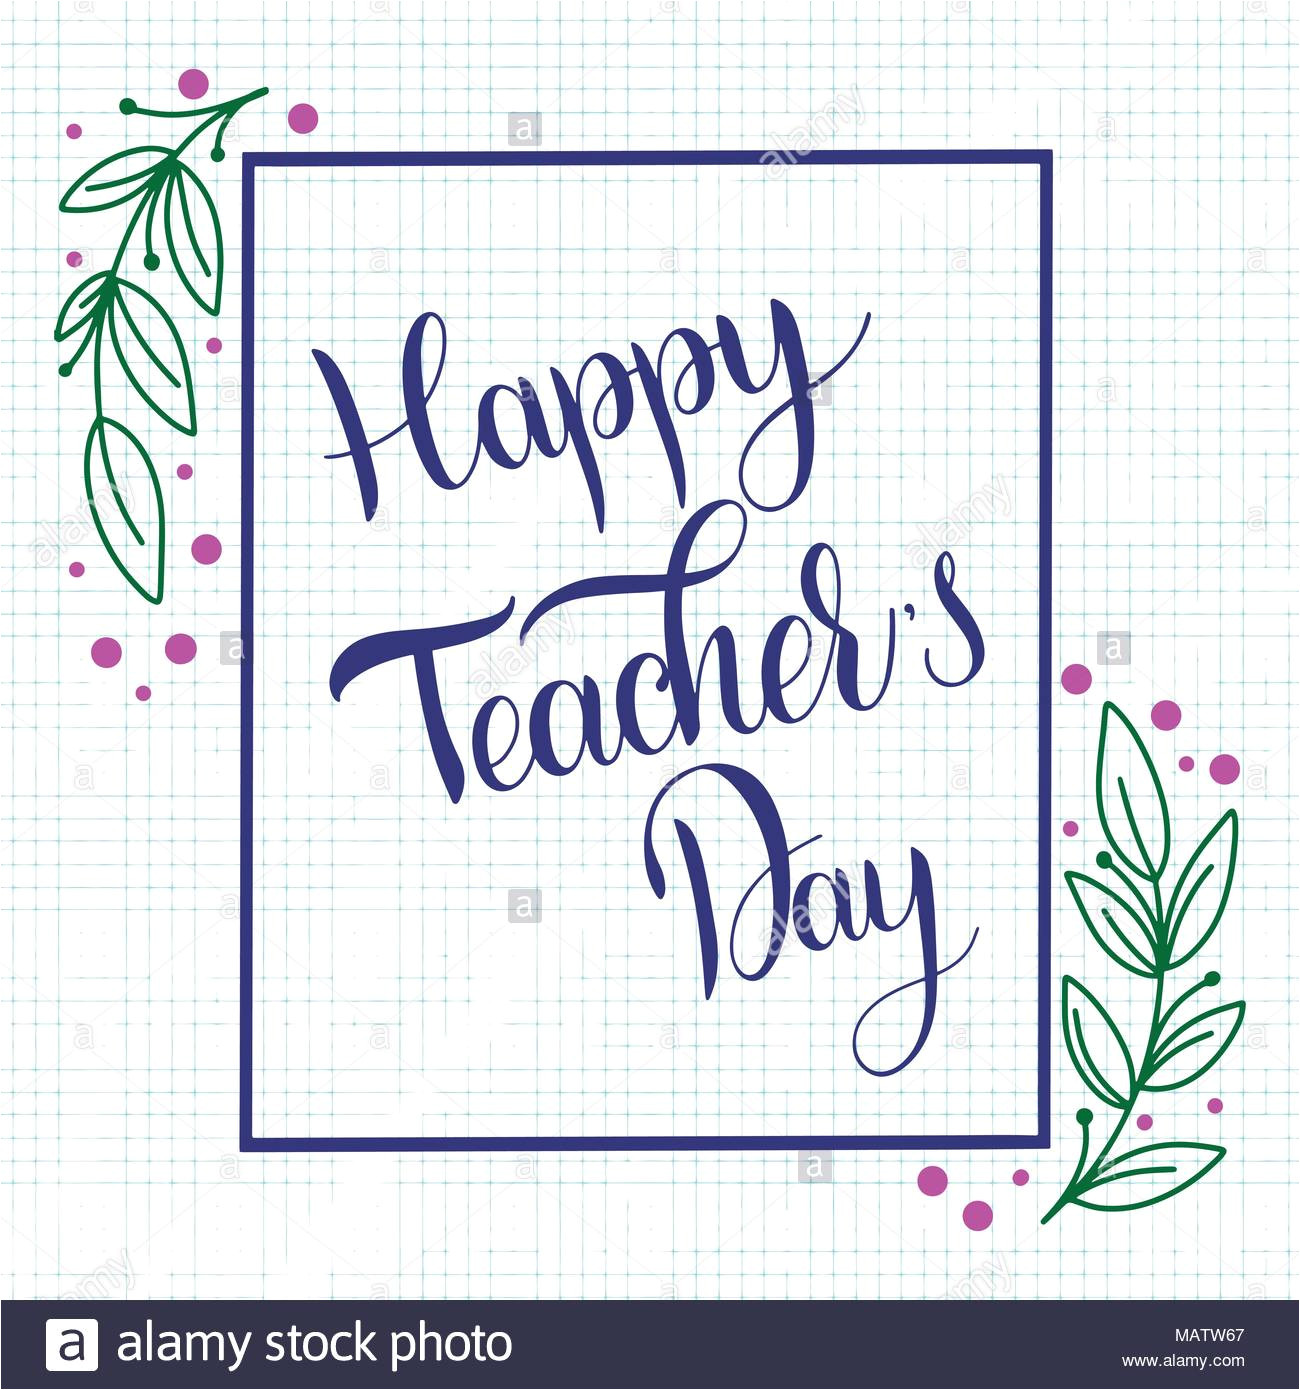 happy teacher day lettering elements for invitations posters greeting cards seasons greetings image